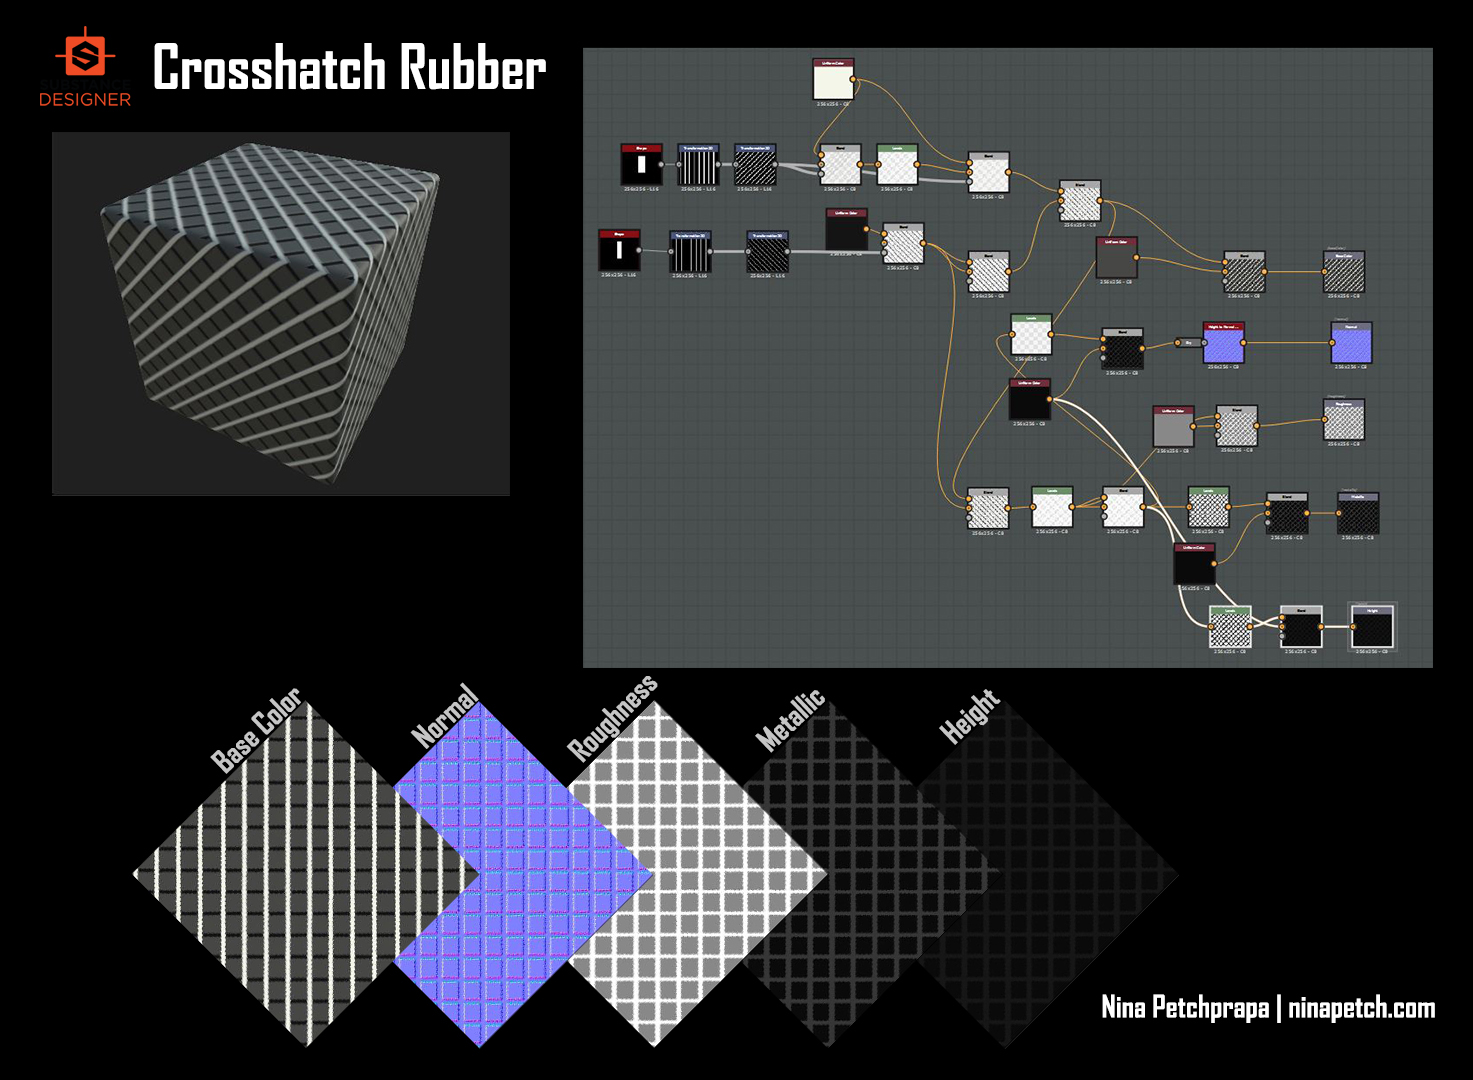 Crosshatch Rubber